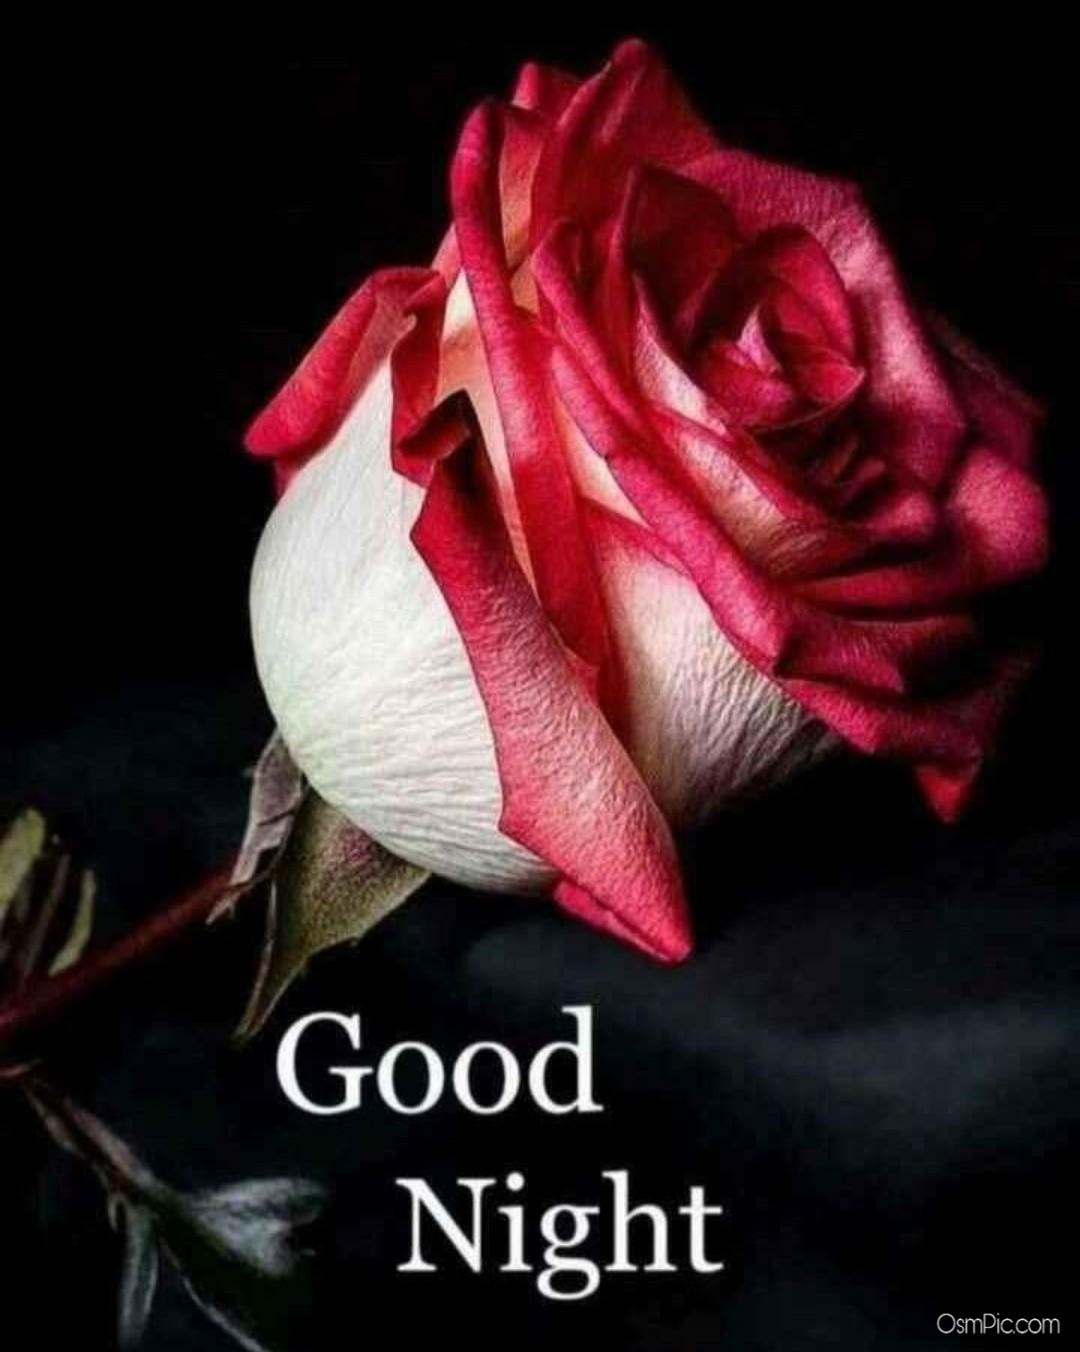 Good Night Images With Red Rose Flowers - Flowers Healthy